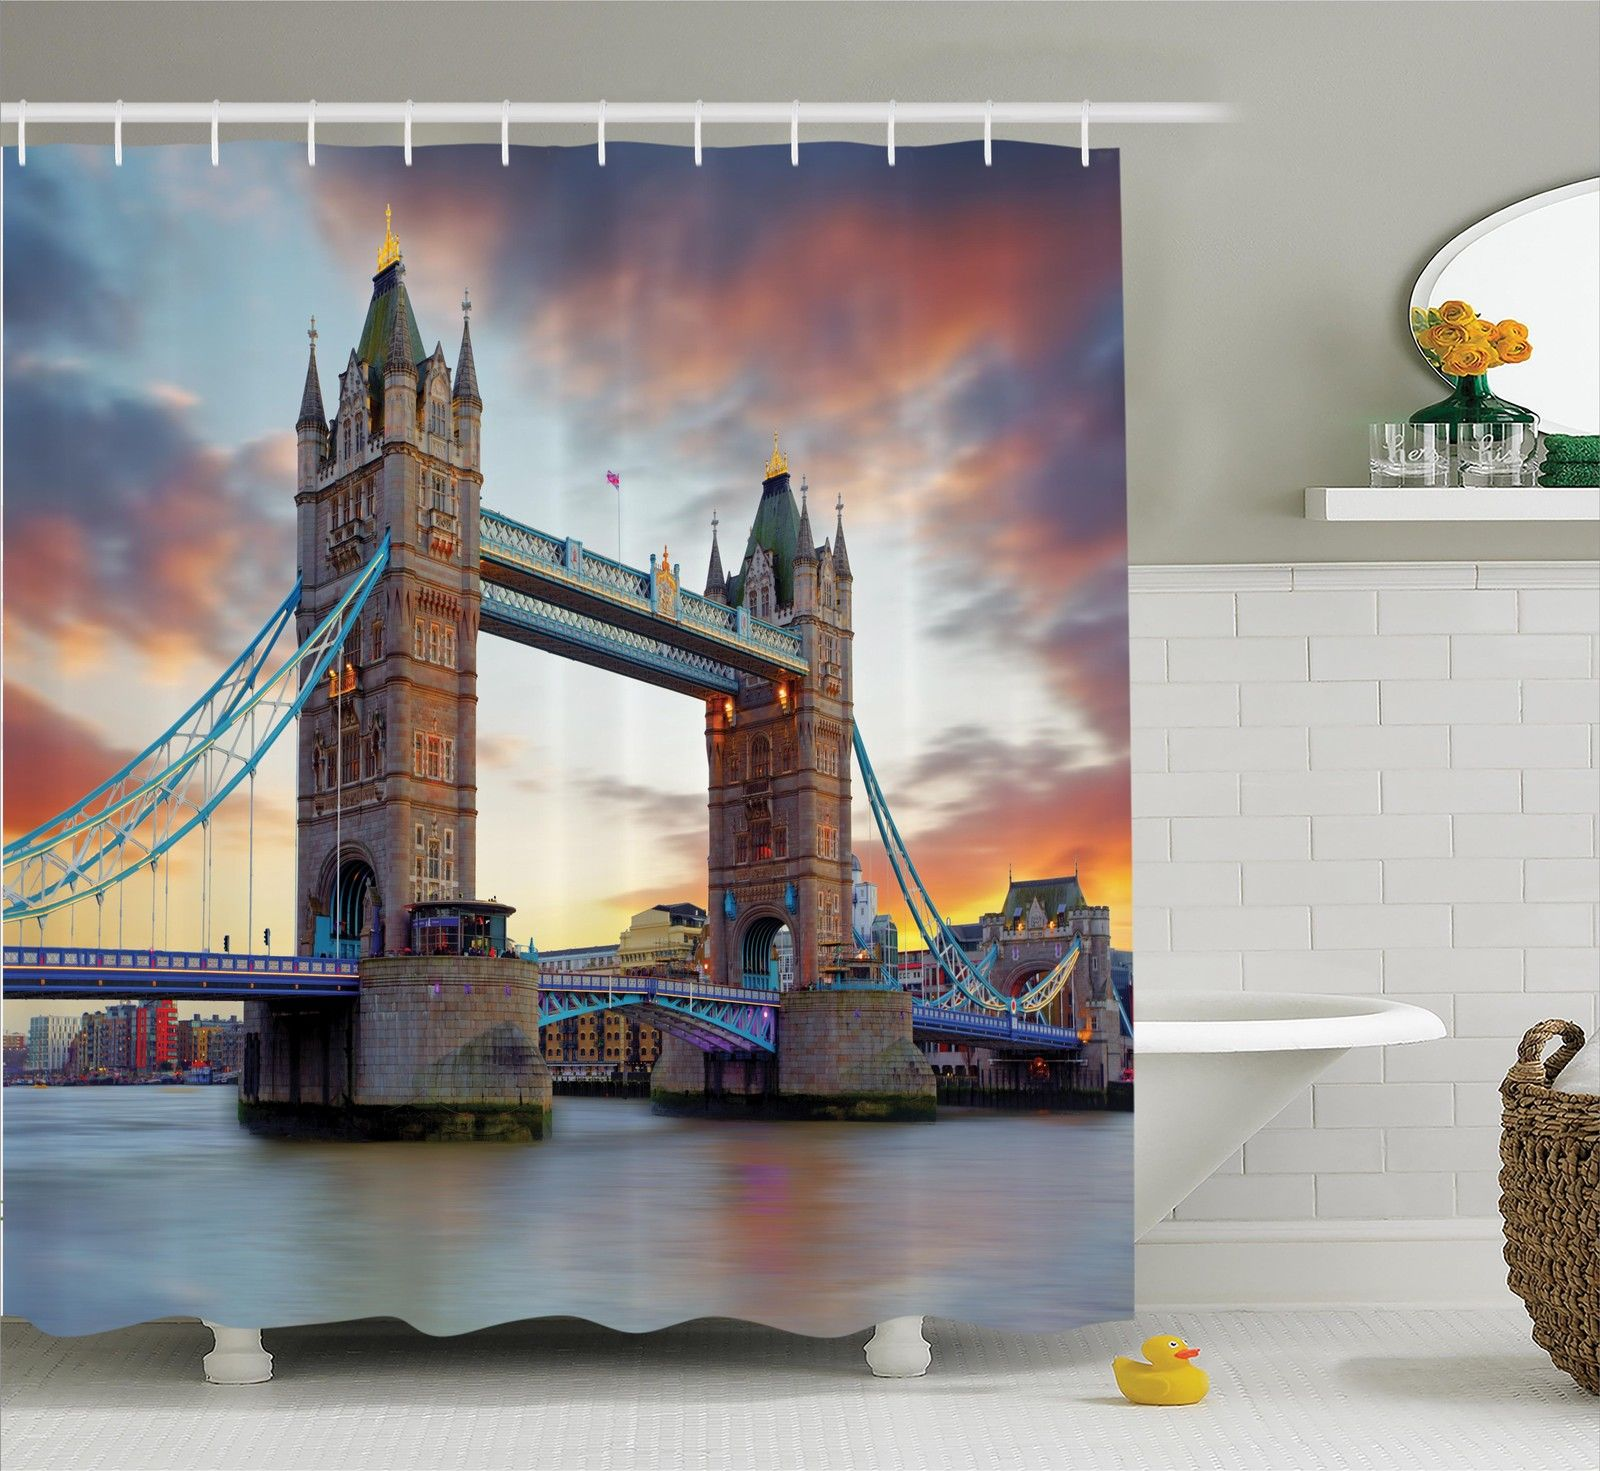 London Decor Shower Curtain Set, The Big Ben And The Westminster Bridge At Night In Uk Street River European Look Photo, Bathroom Accessories, 69W X 70L Inches, By Ambesonne